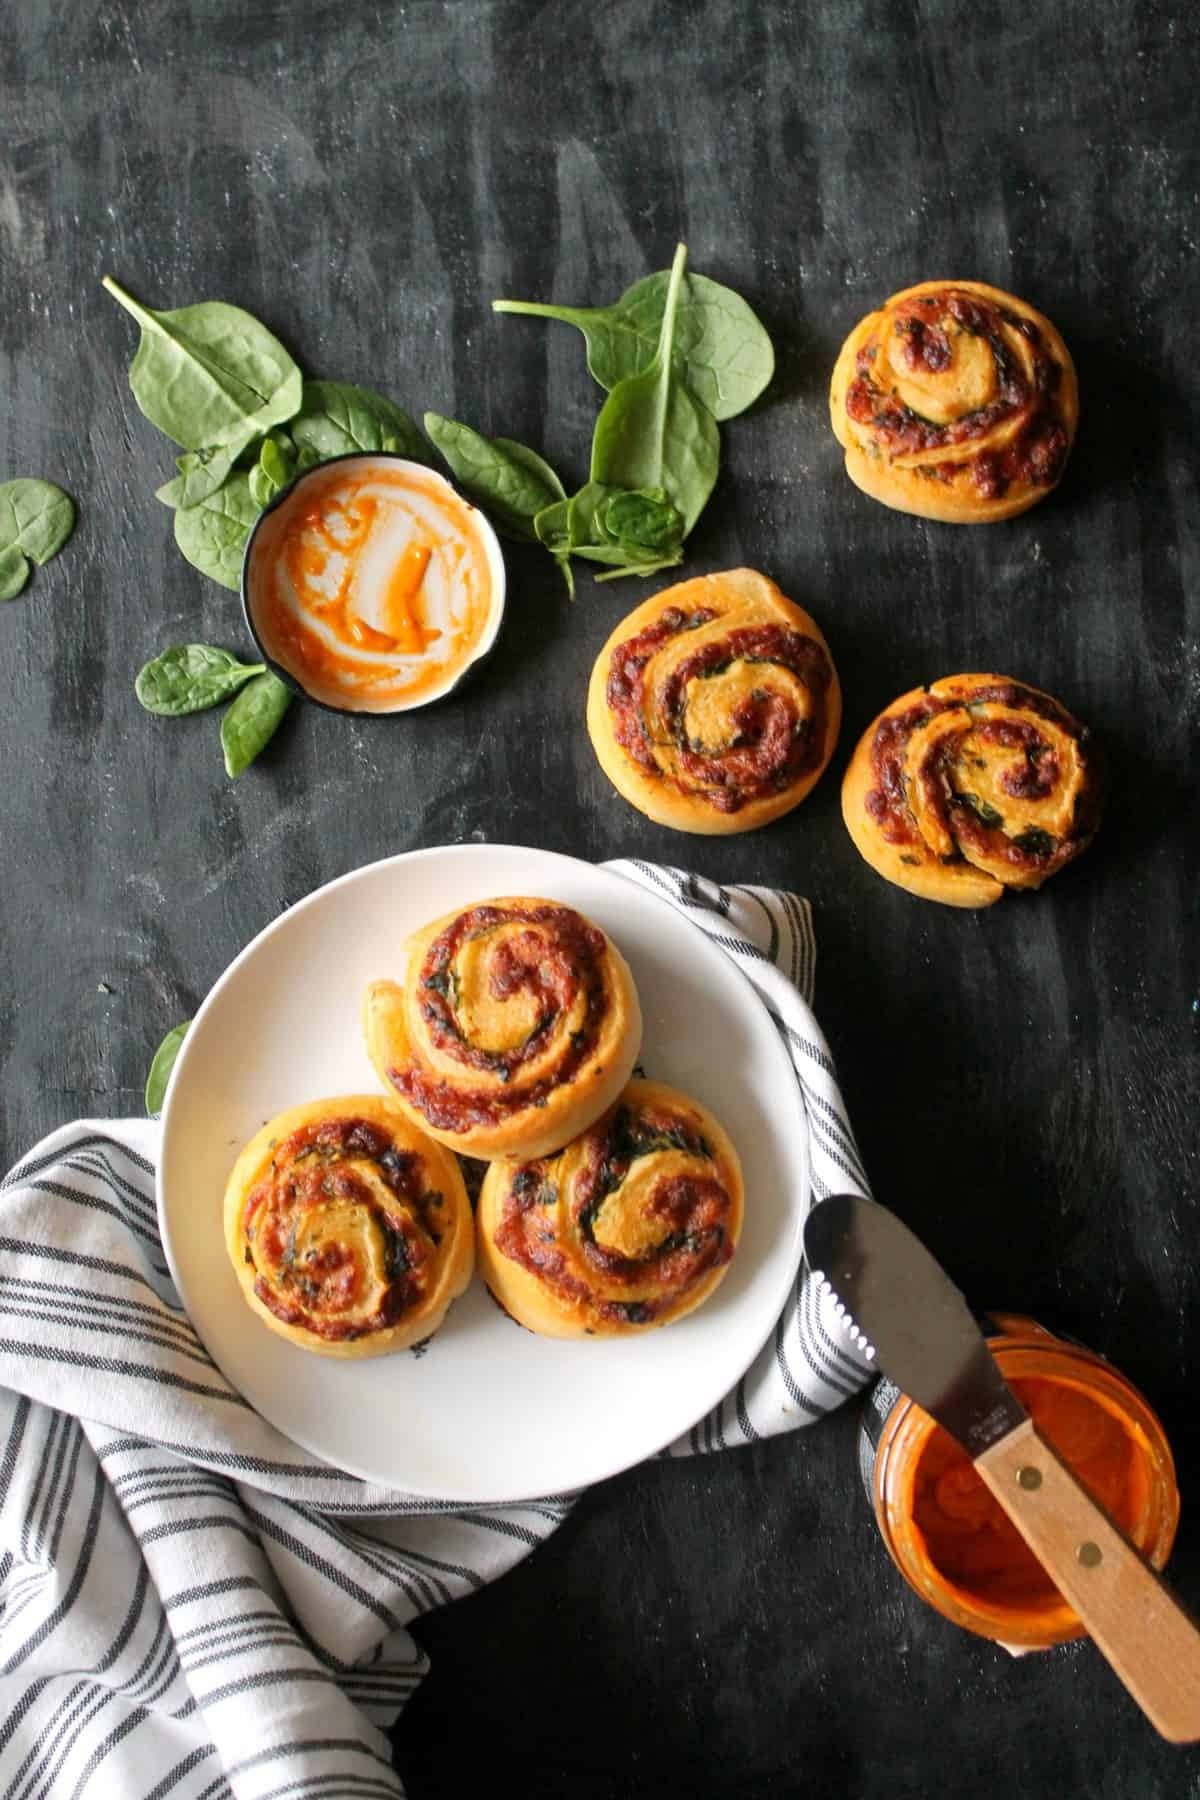 Cheesy Tomato, Basil & Spinach Pinwheels. These 5 ingredient appetizers will be star of your next party! So easy to make and bursting with flavor!